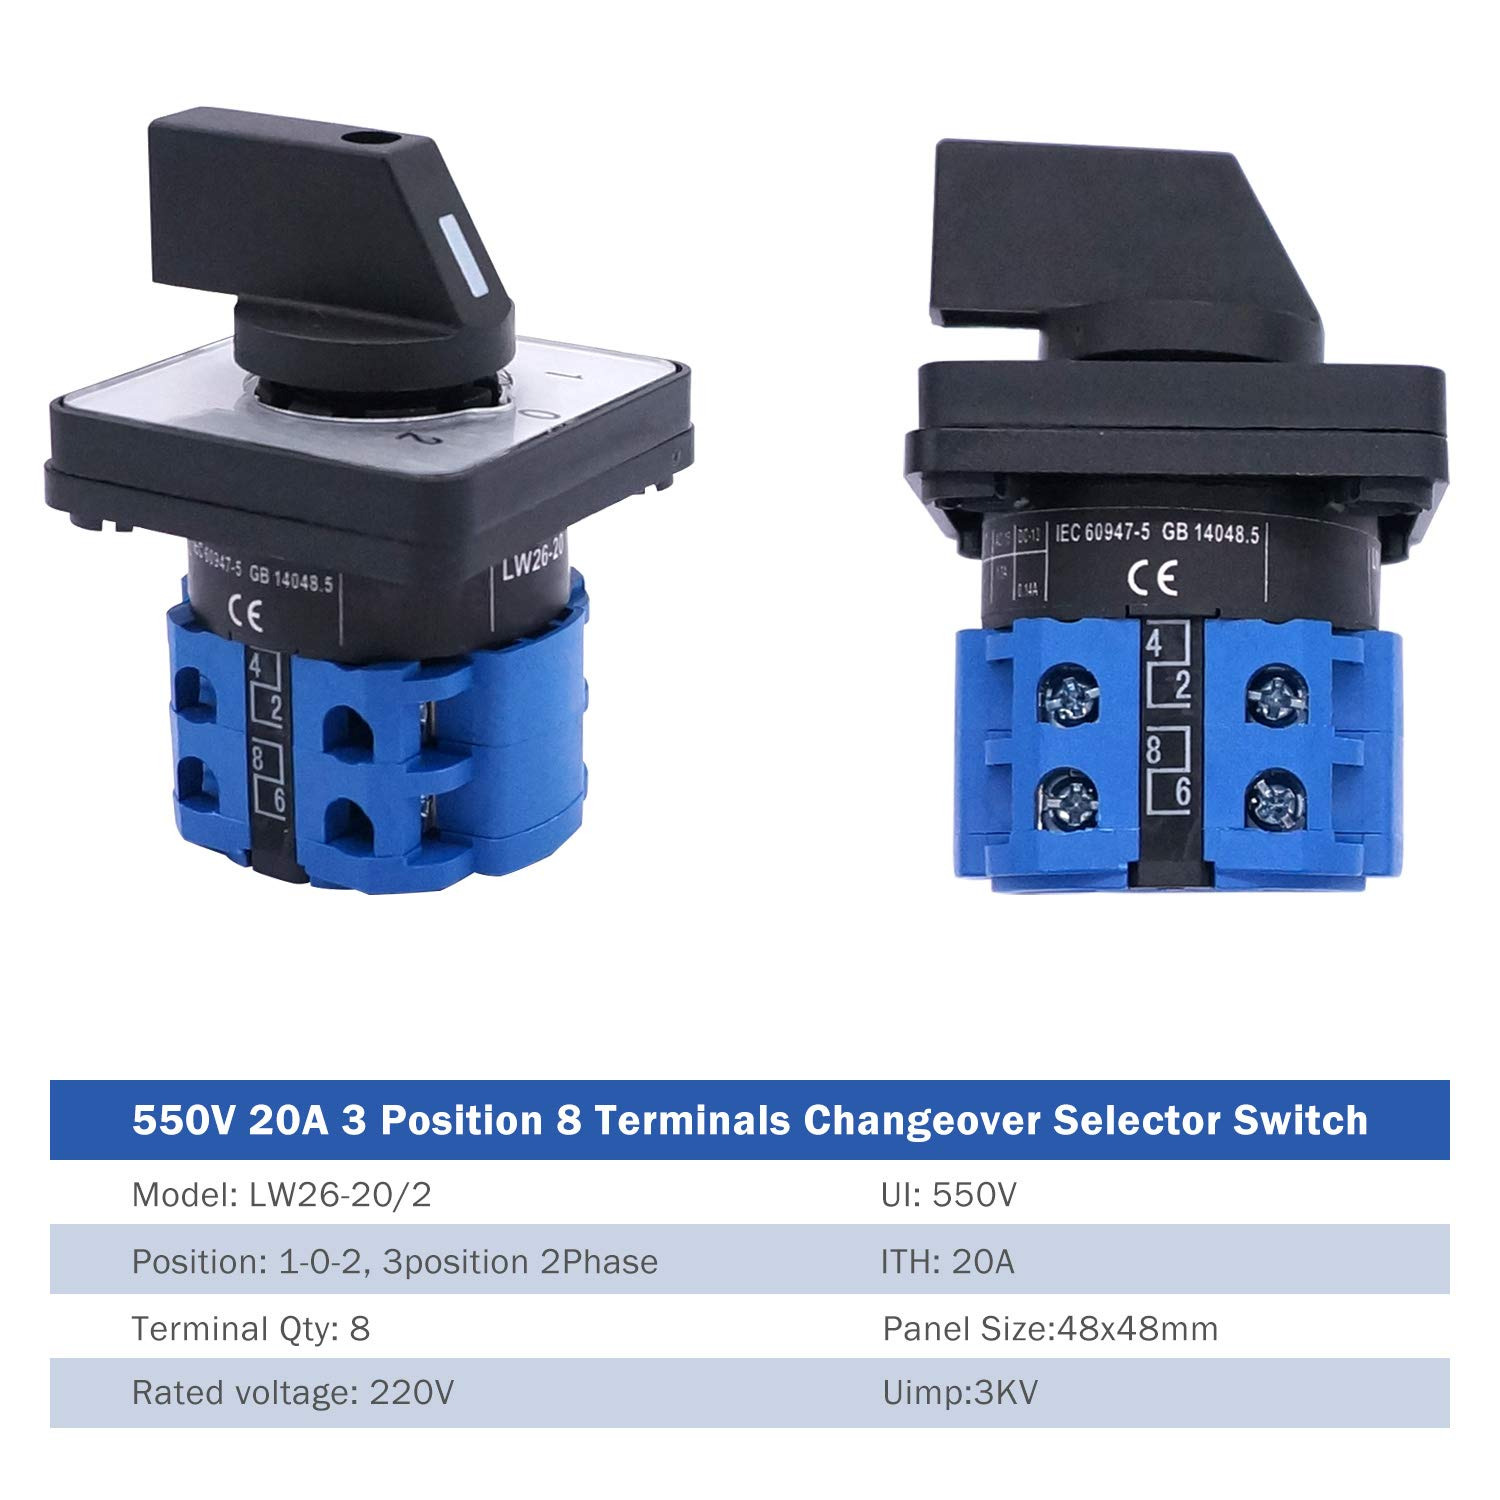 SV2-4s Blue Connection Terminal LW26-20//2 Taiss Universal Changeover Switch 20A 550V 3 Position 8 Terminals Latching Rotary Cam Selector Switch